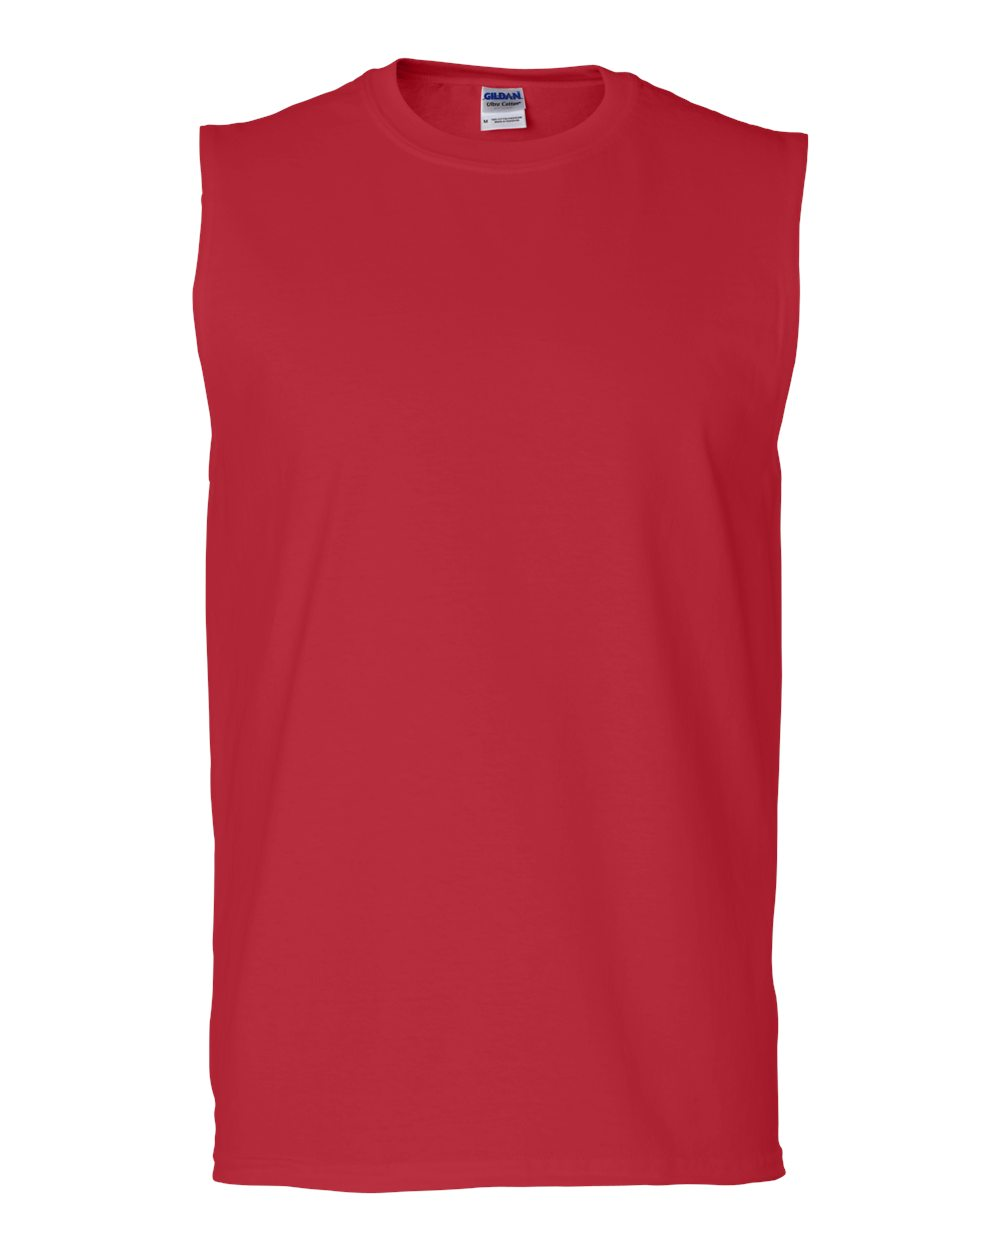 sleeveless shirts gildan-ultra-cotton-sleeveless-t-shirt-2700 BMFLTMX